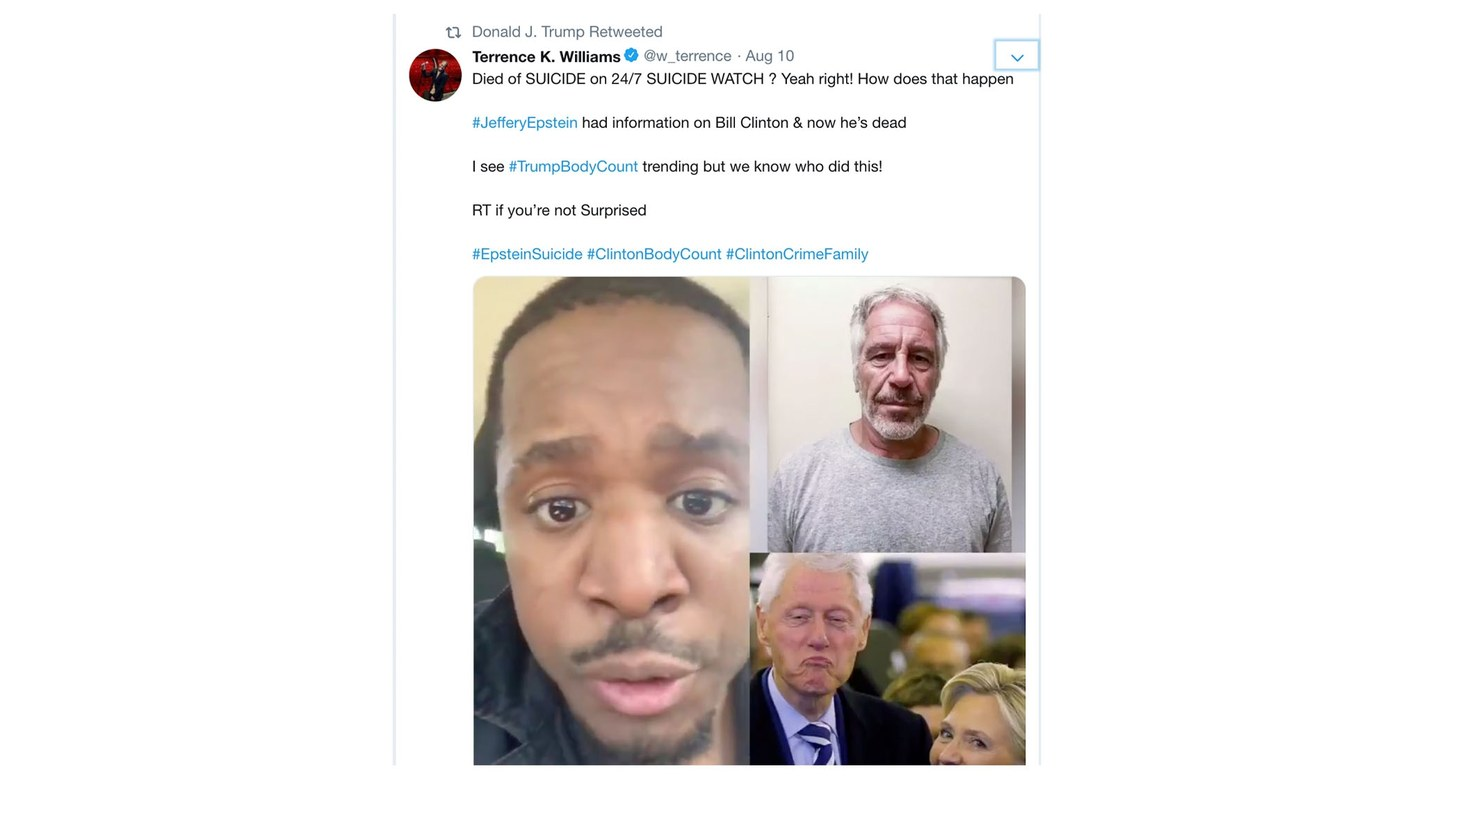 President Trump's retweet about Jeffrey Epstein's death.